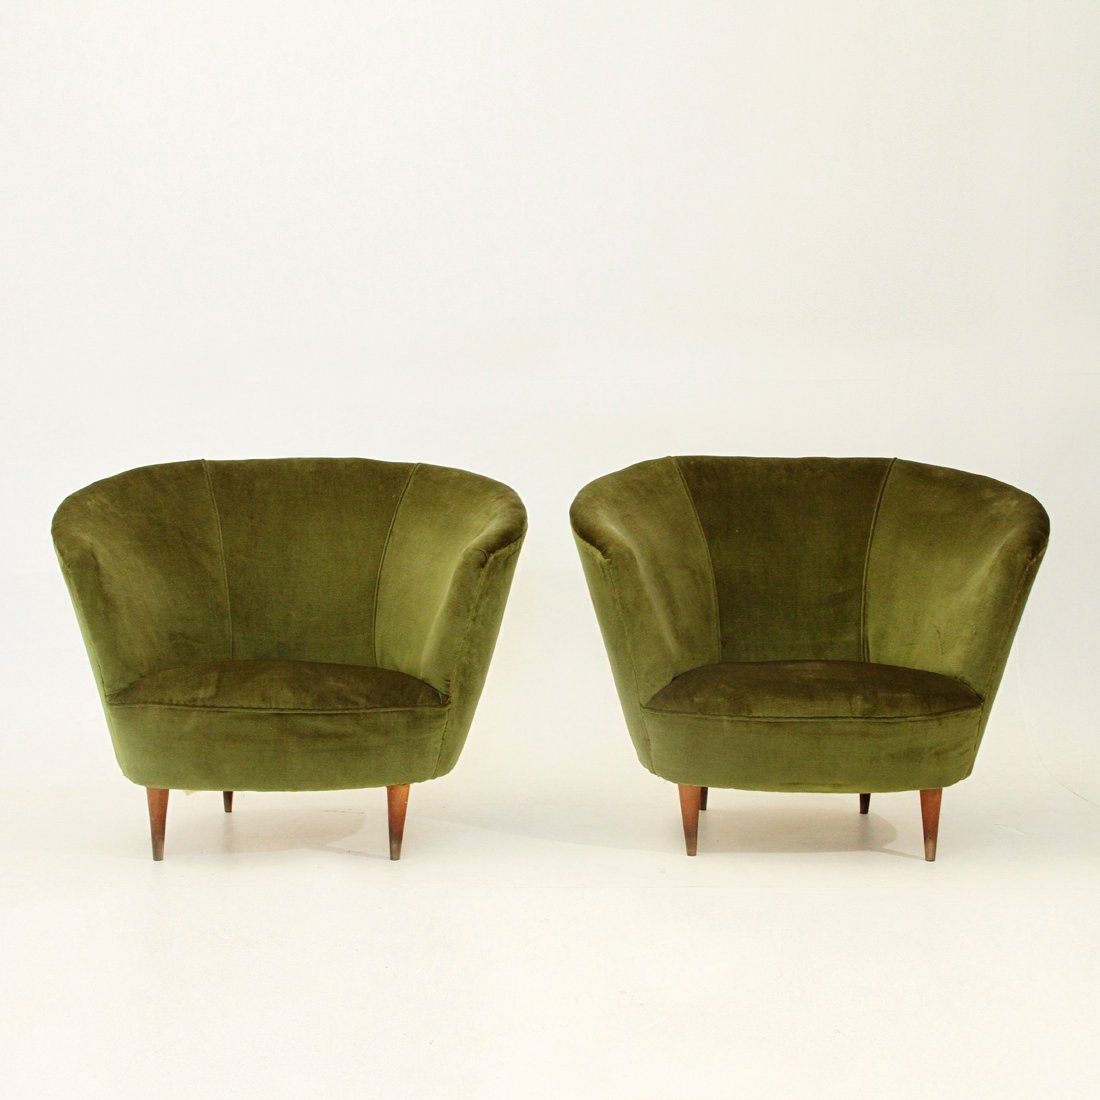 Velvet armchairs 1940s set of 2 for sale at pamono for 2 armchairs for sale